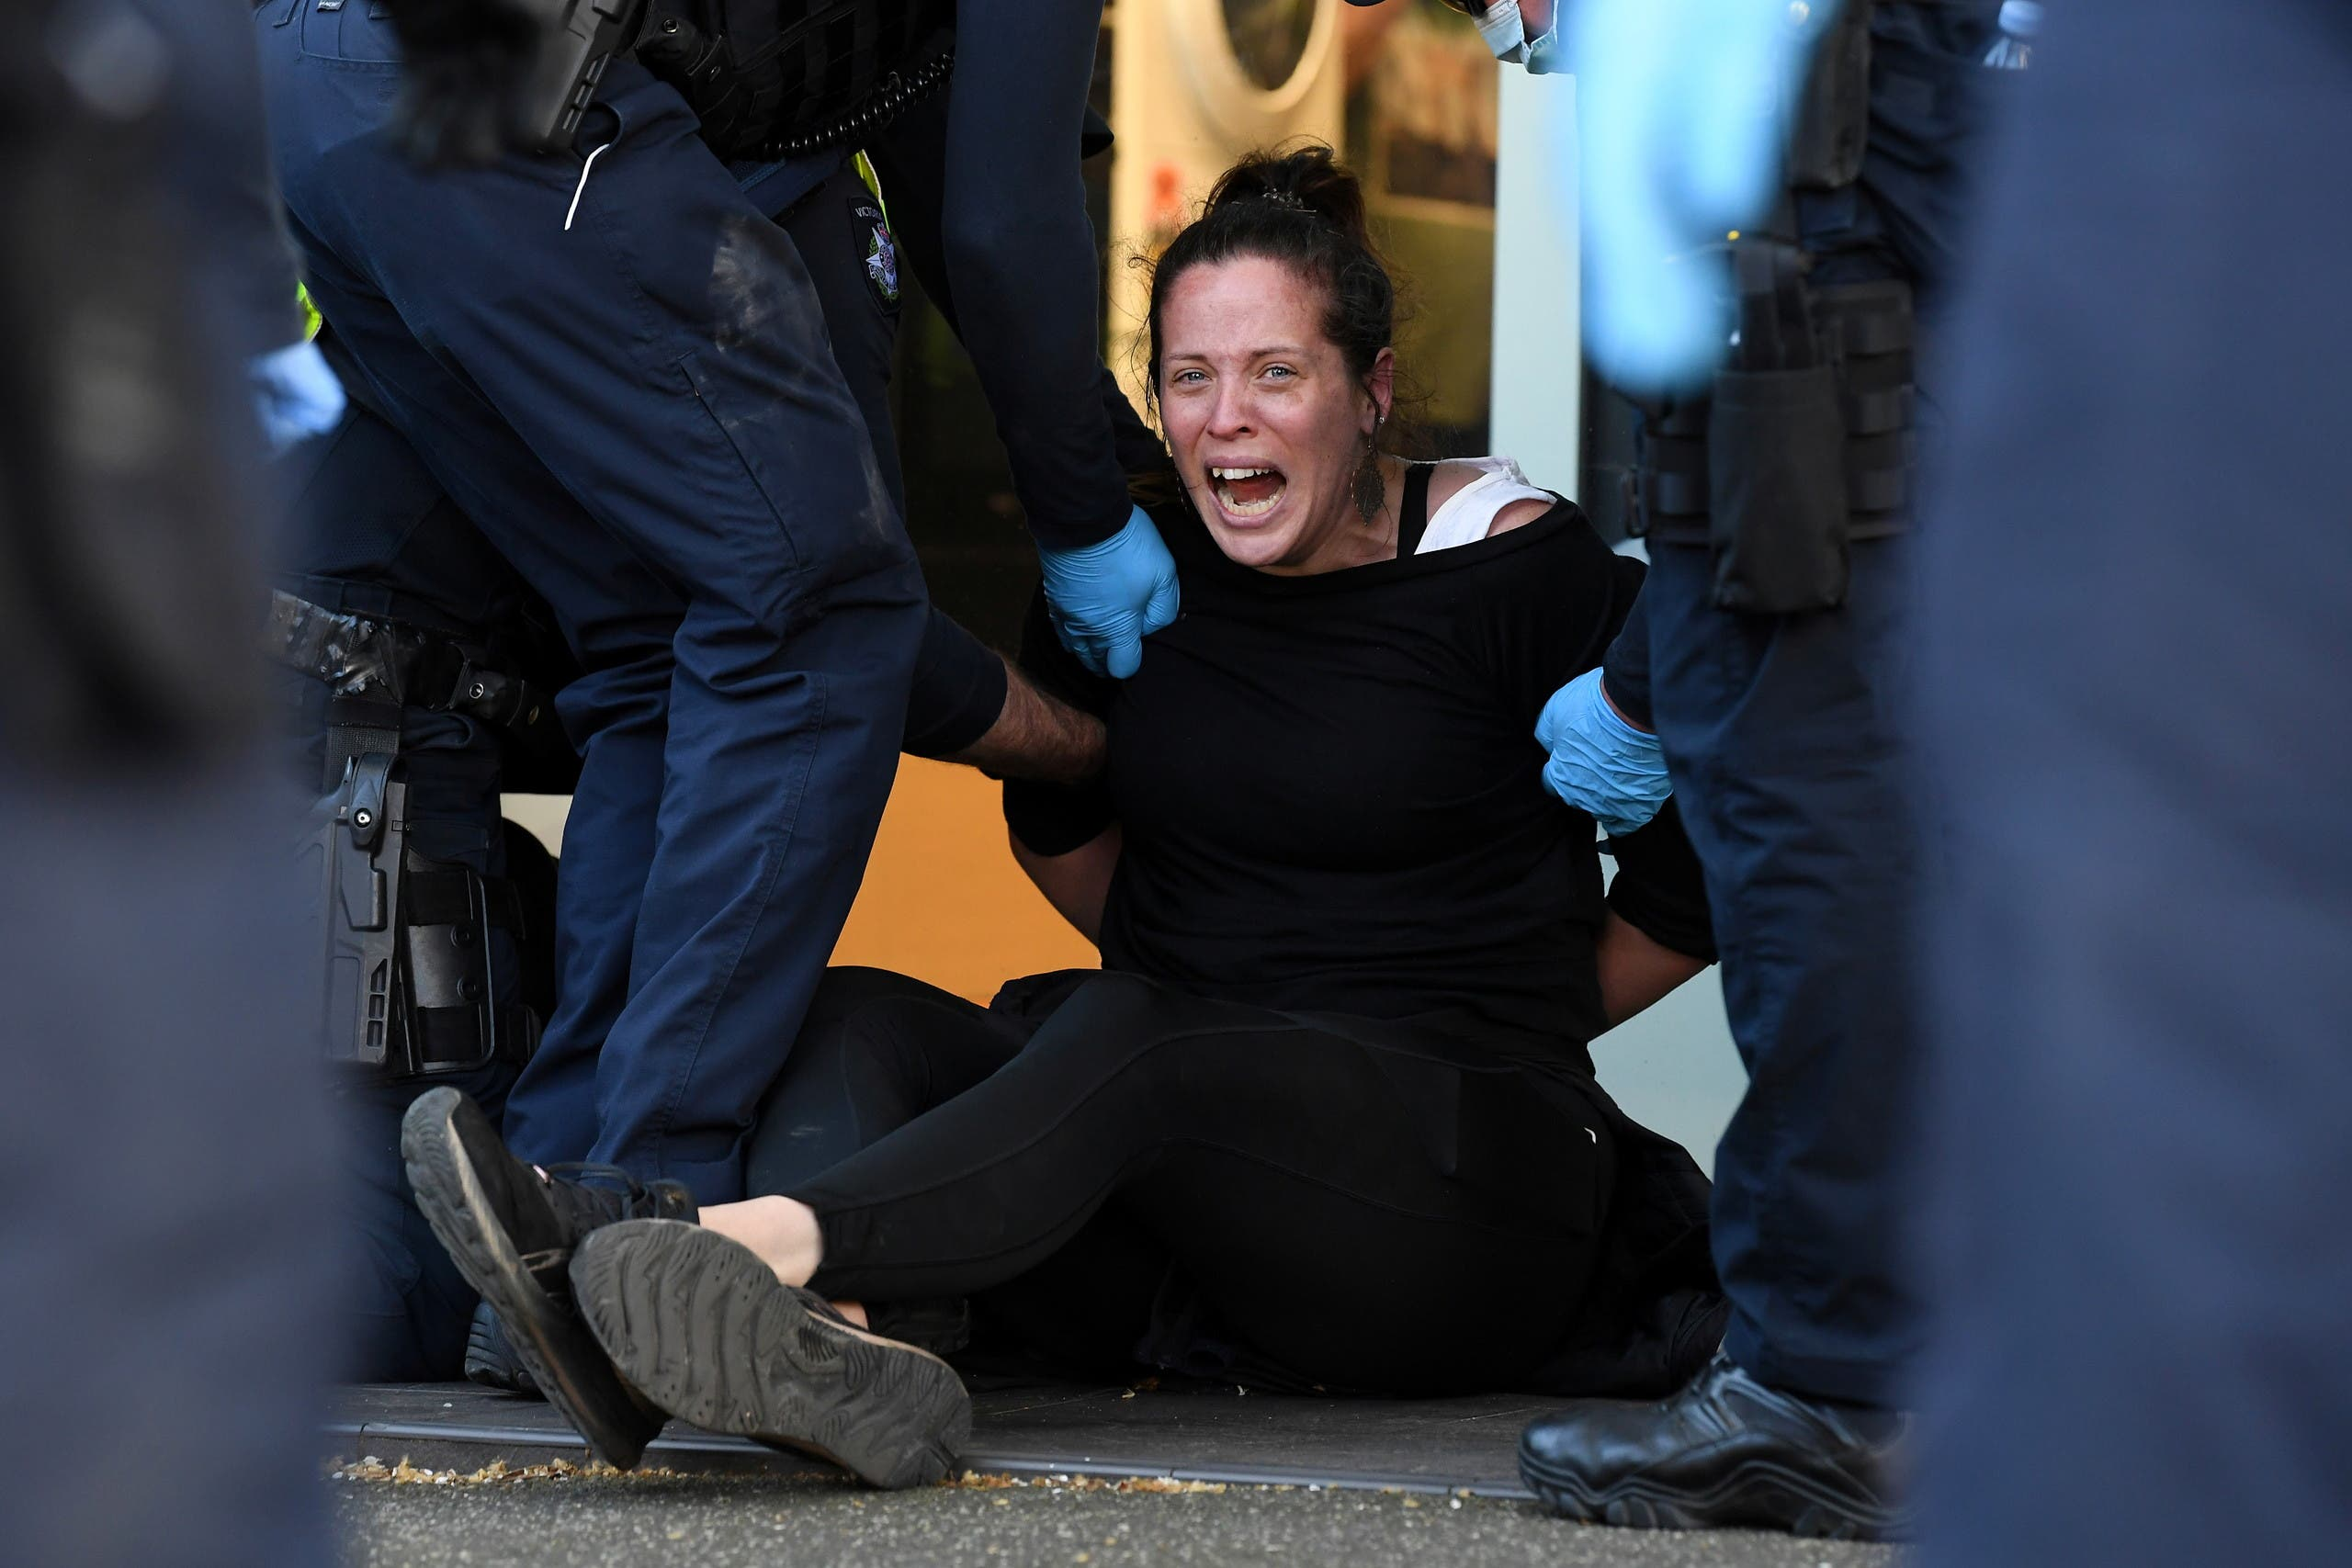 A protester is detained by Victoria police during a The Worldwide Rally for Freedom demonstration in Melbourne, Australia September 18, 2021. (Reuters)